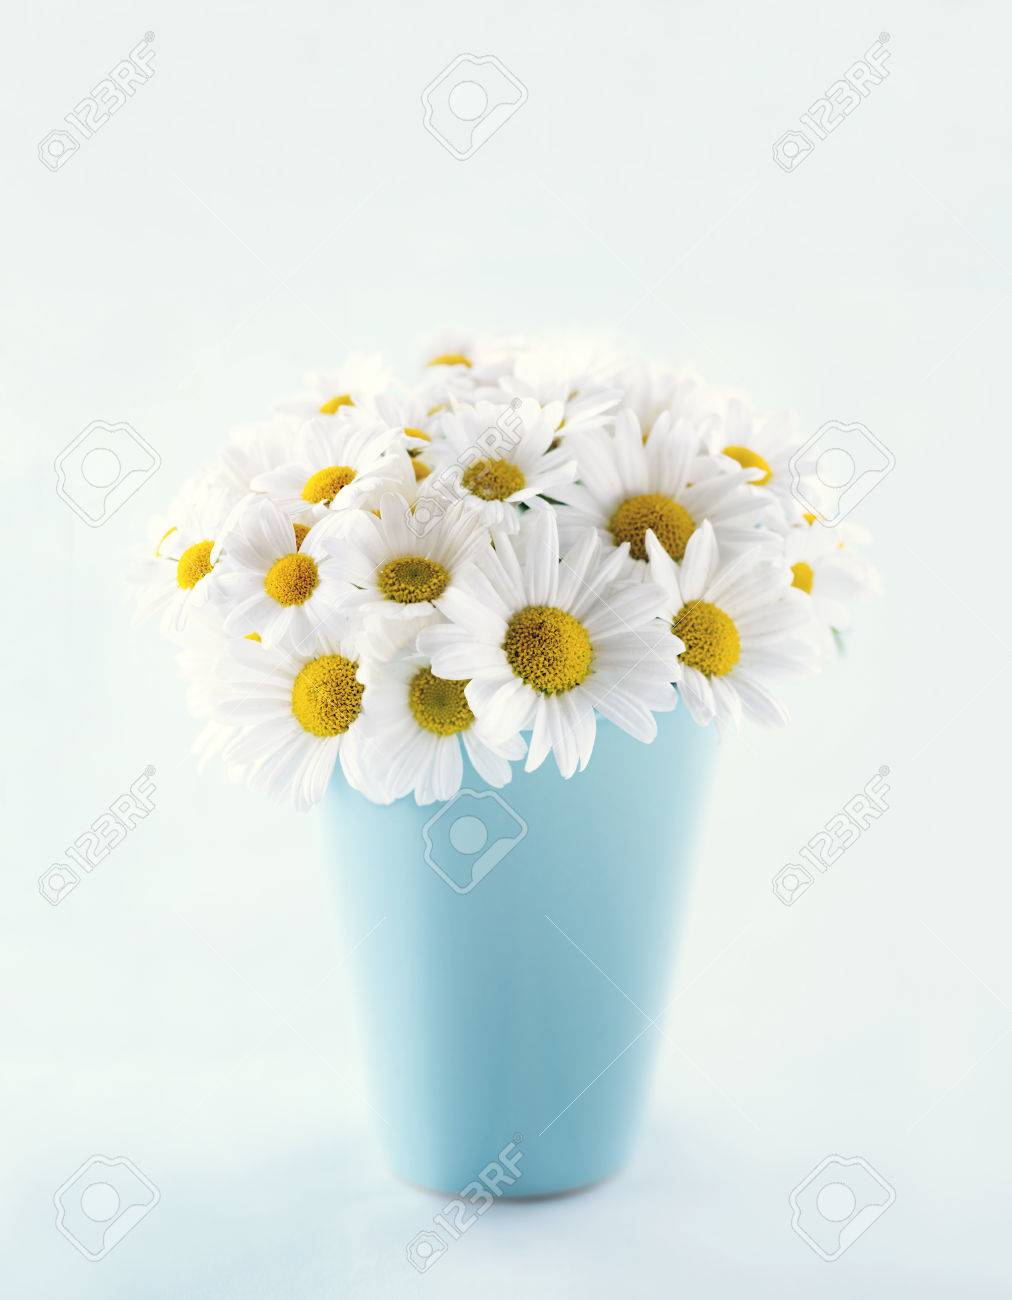 Bouquet Of Daisy Flowers In A Blue Vase On Light Blue Pastel Stock Photo Picture And Royalty Free Image Image 38719346